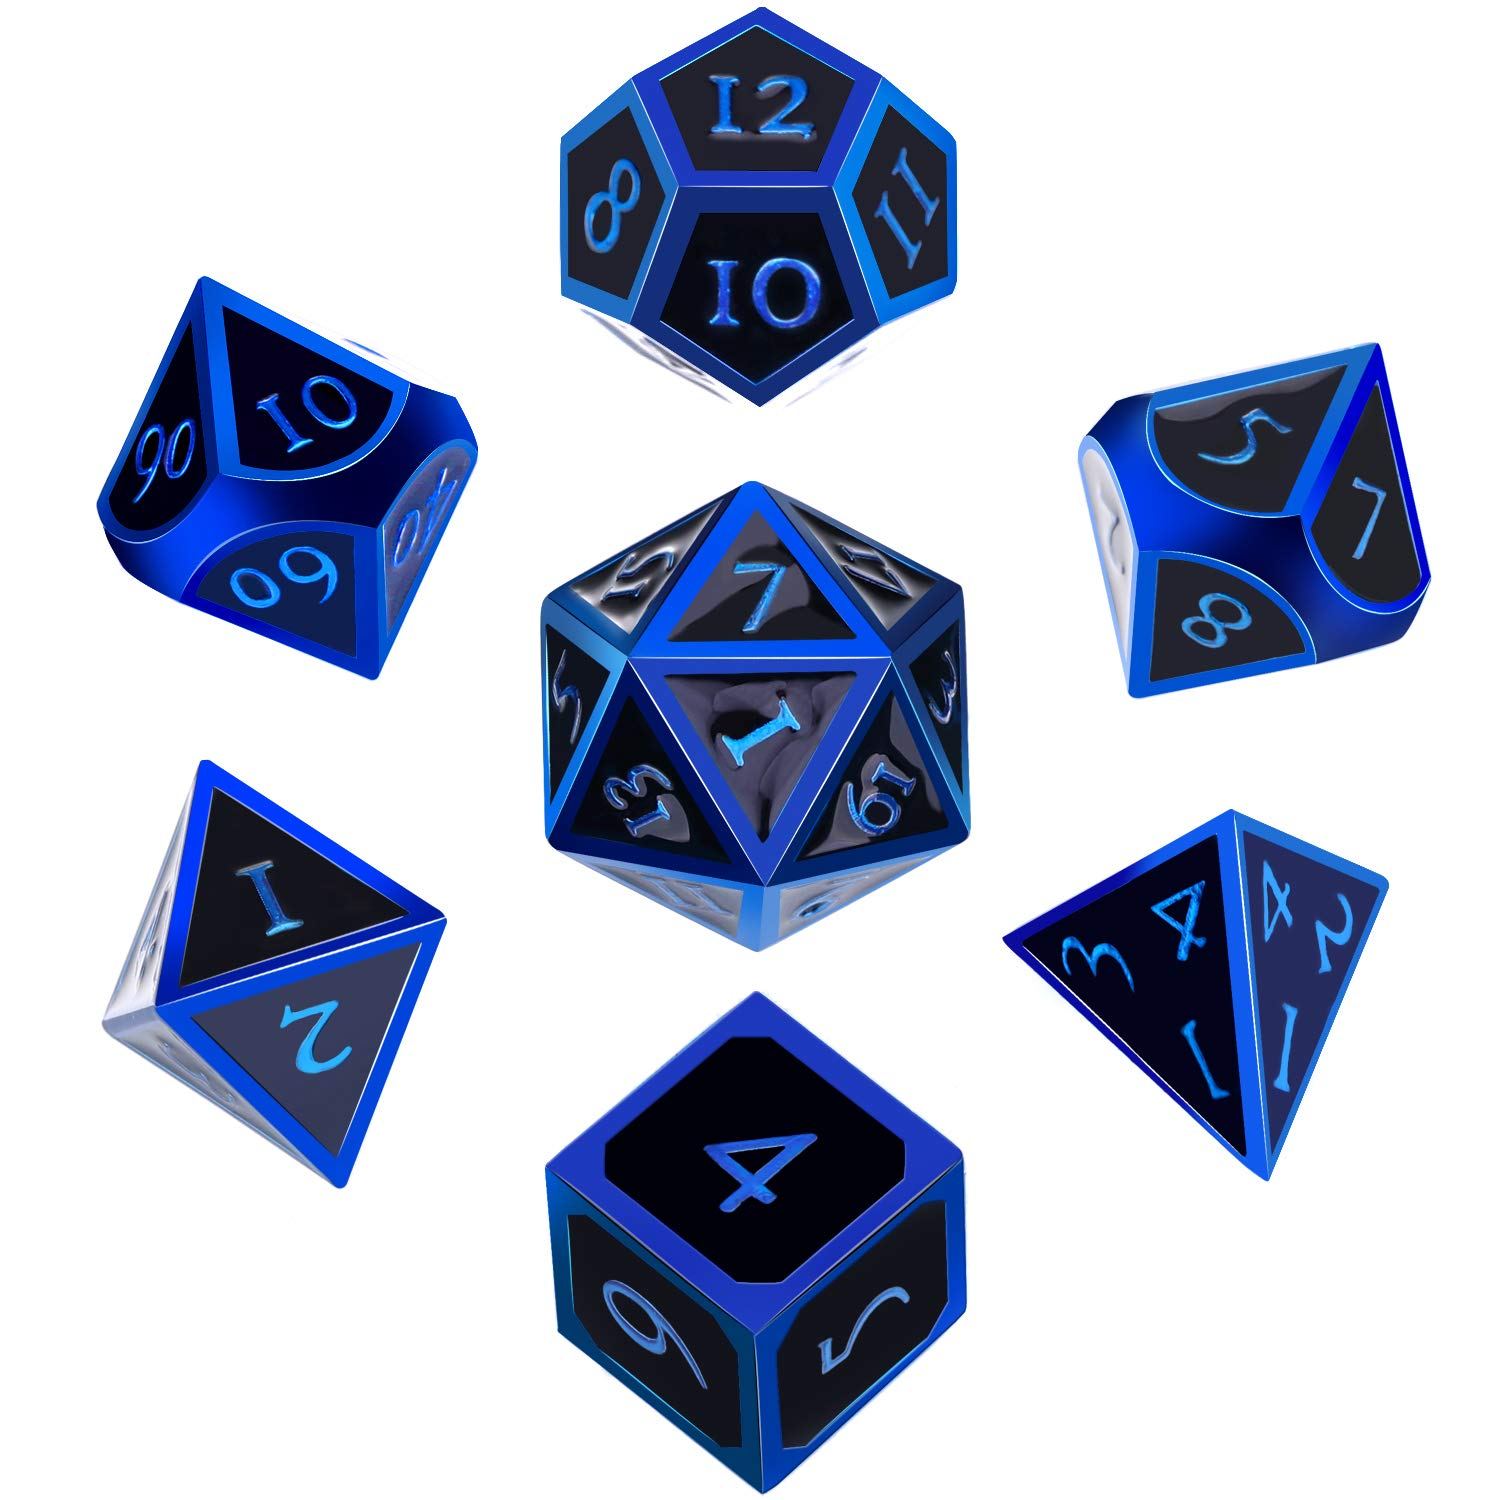 Hestya 7 Pieces Metal Dices Set DND Game Polyhedral Solid Metal D&D Dice Set with Storage Bag and Zinc Alloy with Enamel for Role Playing Game Dungeons and Dragons (Blue Edge Black) by Hestya (Image #1)